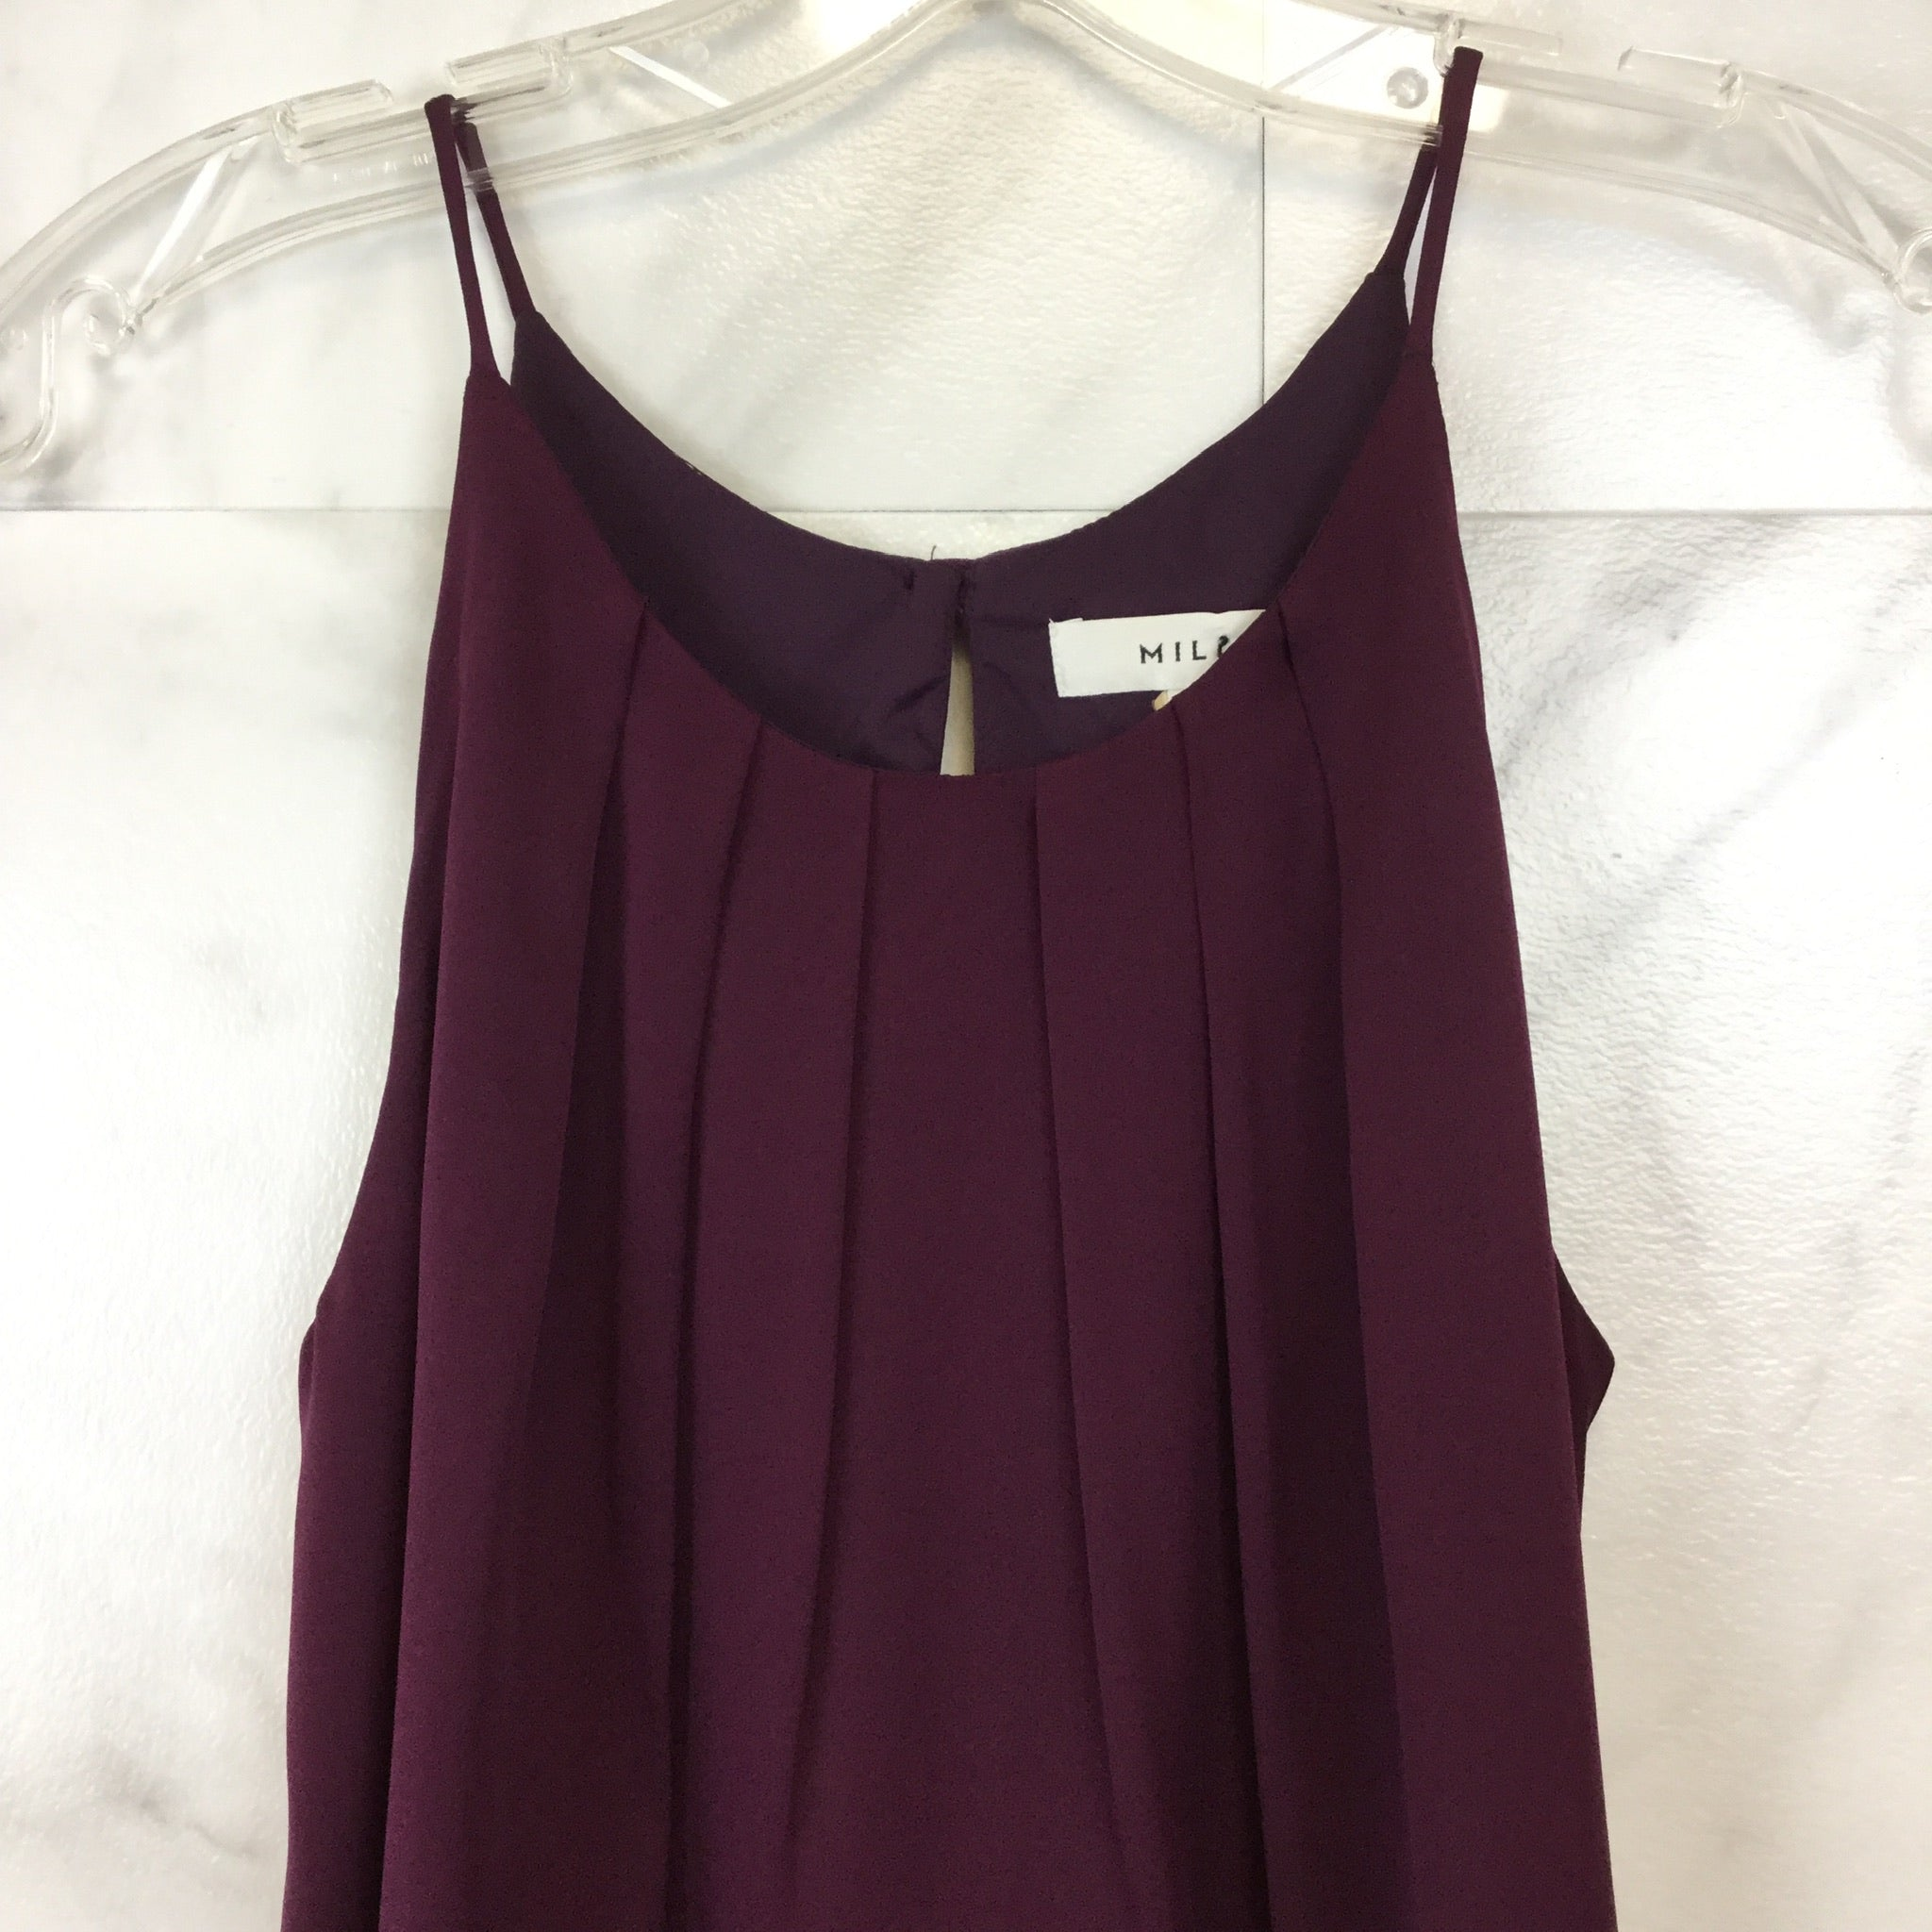 Milly Pleated Stretch Silk Tank Top - size 0